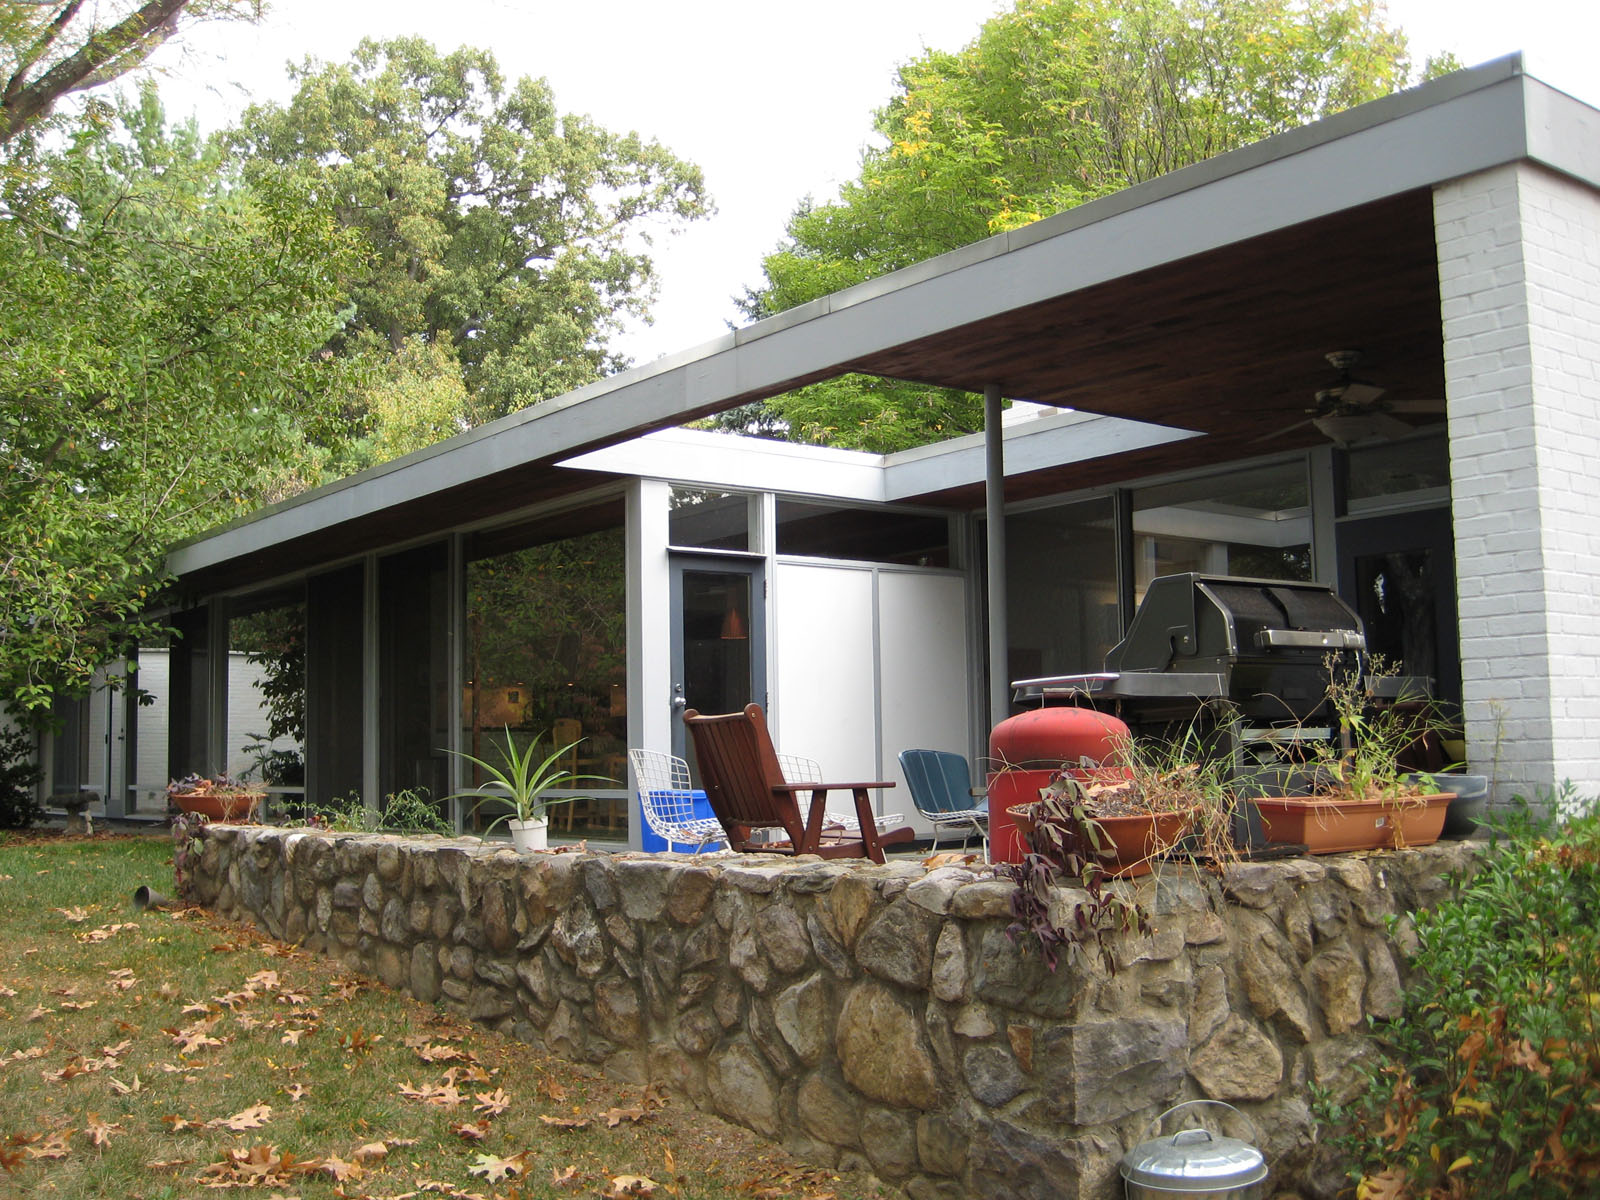 Marcel Breuer's Krieger House